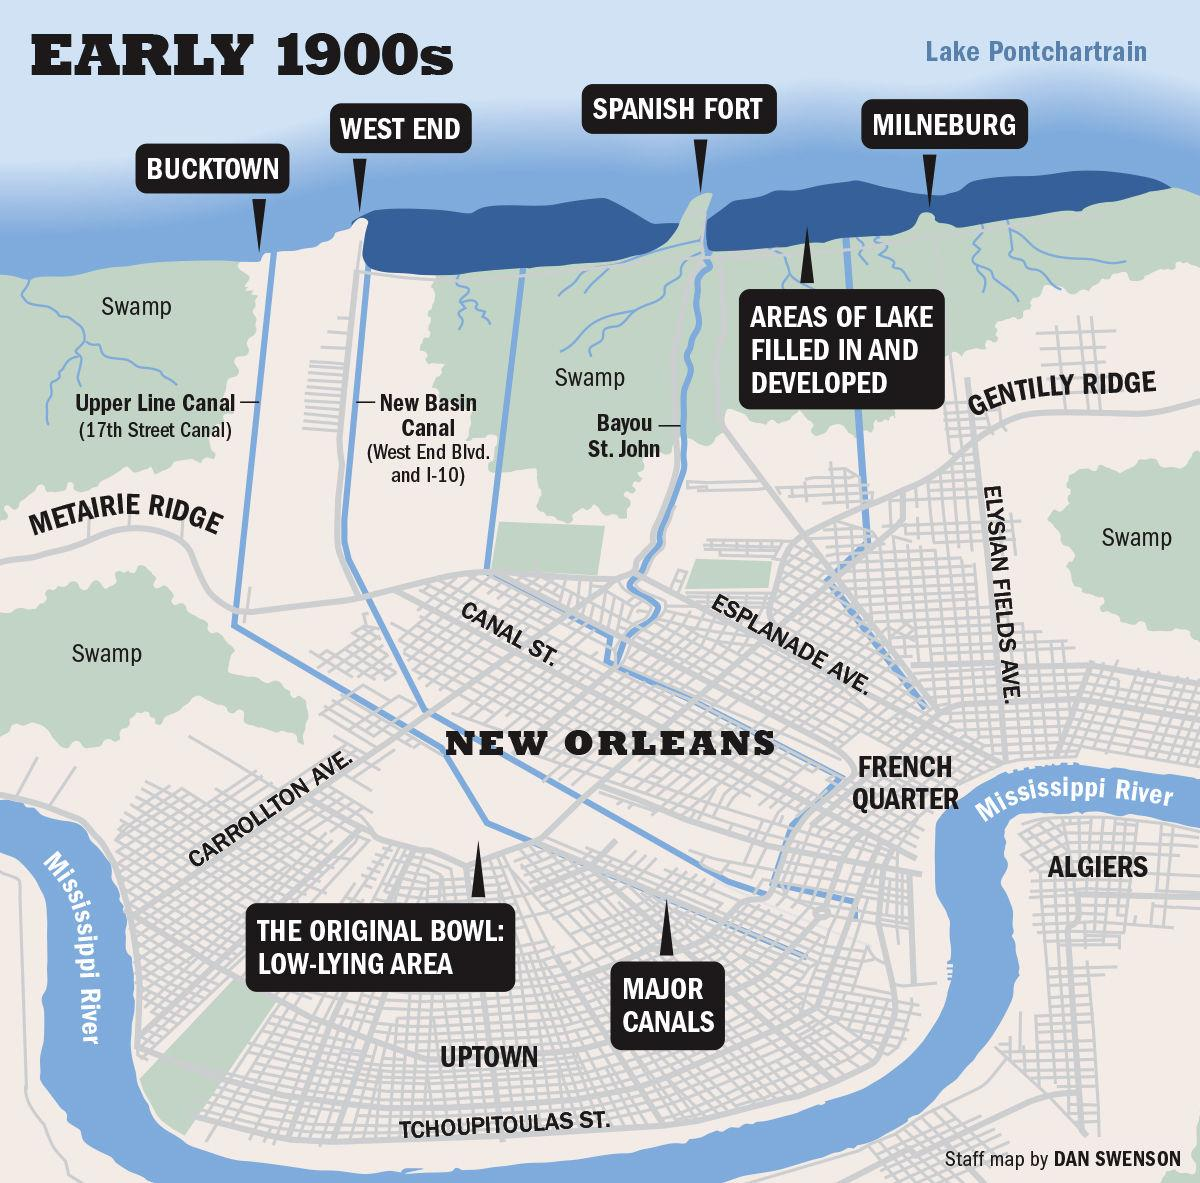 090119 Early 1900s New Orleans map